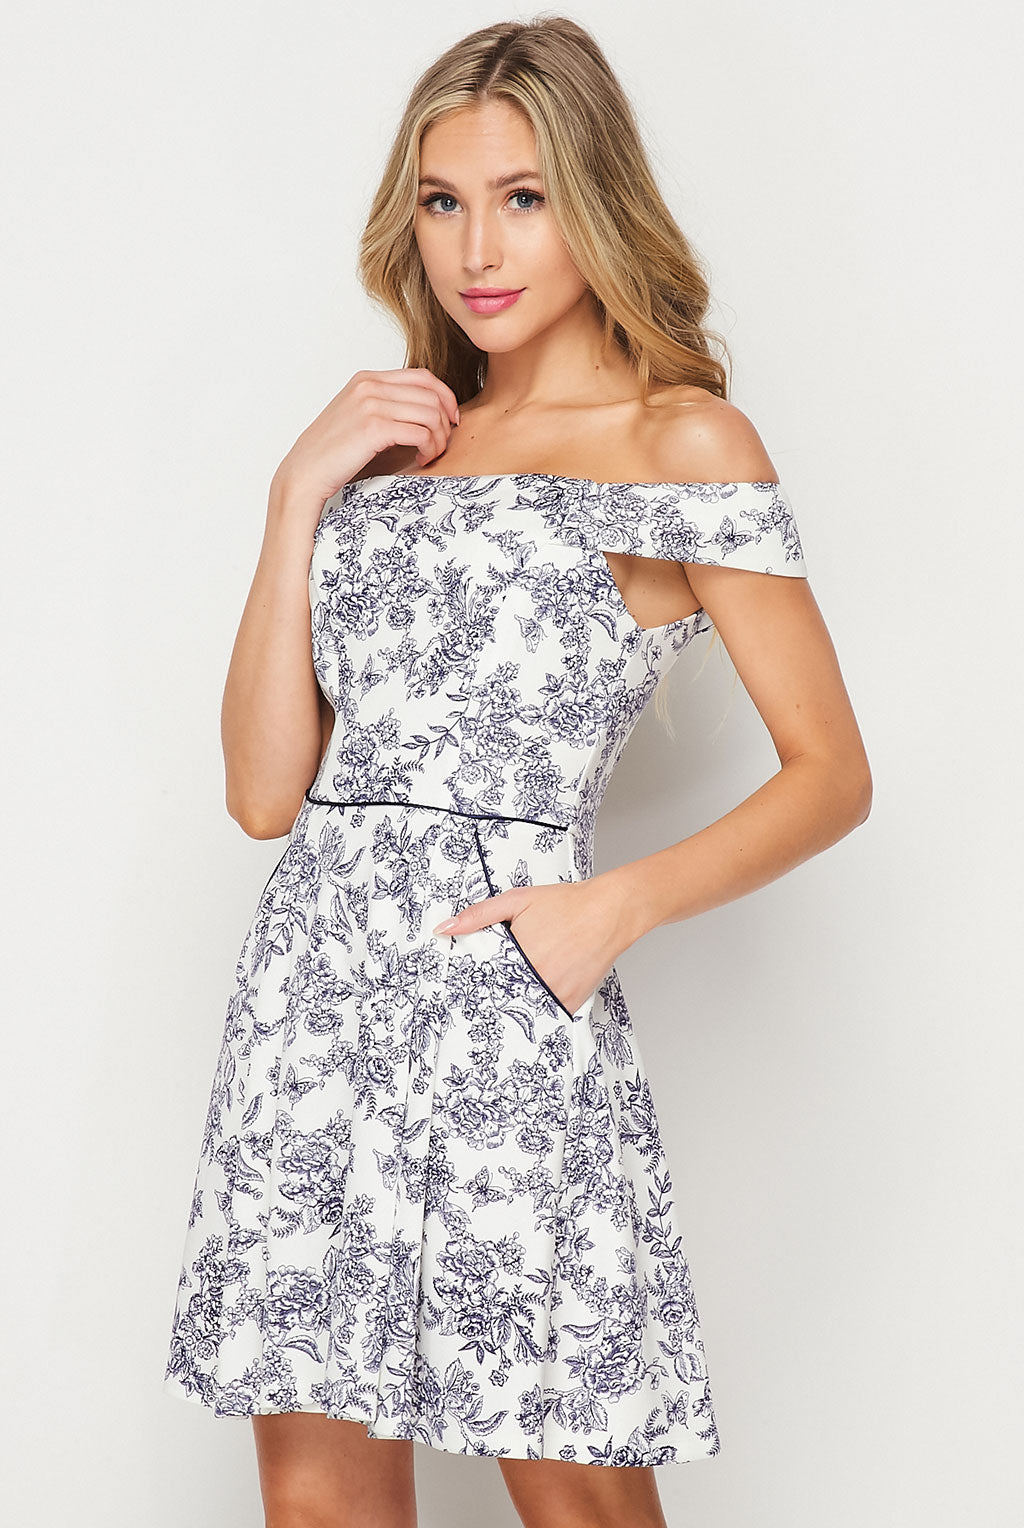 Teeze Me | Off Shoulder Printed W/ Pockets Short Dress | Navy/Ivory